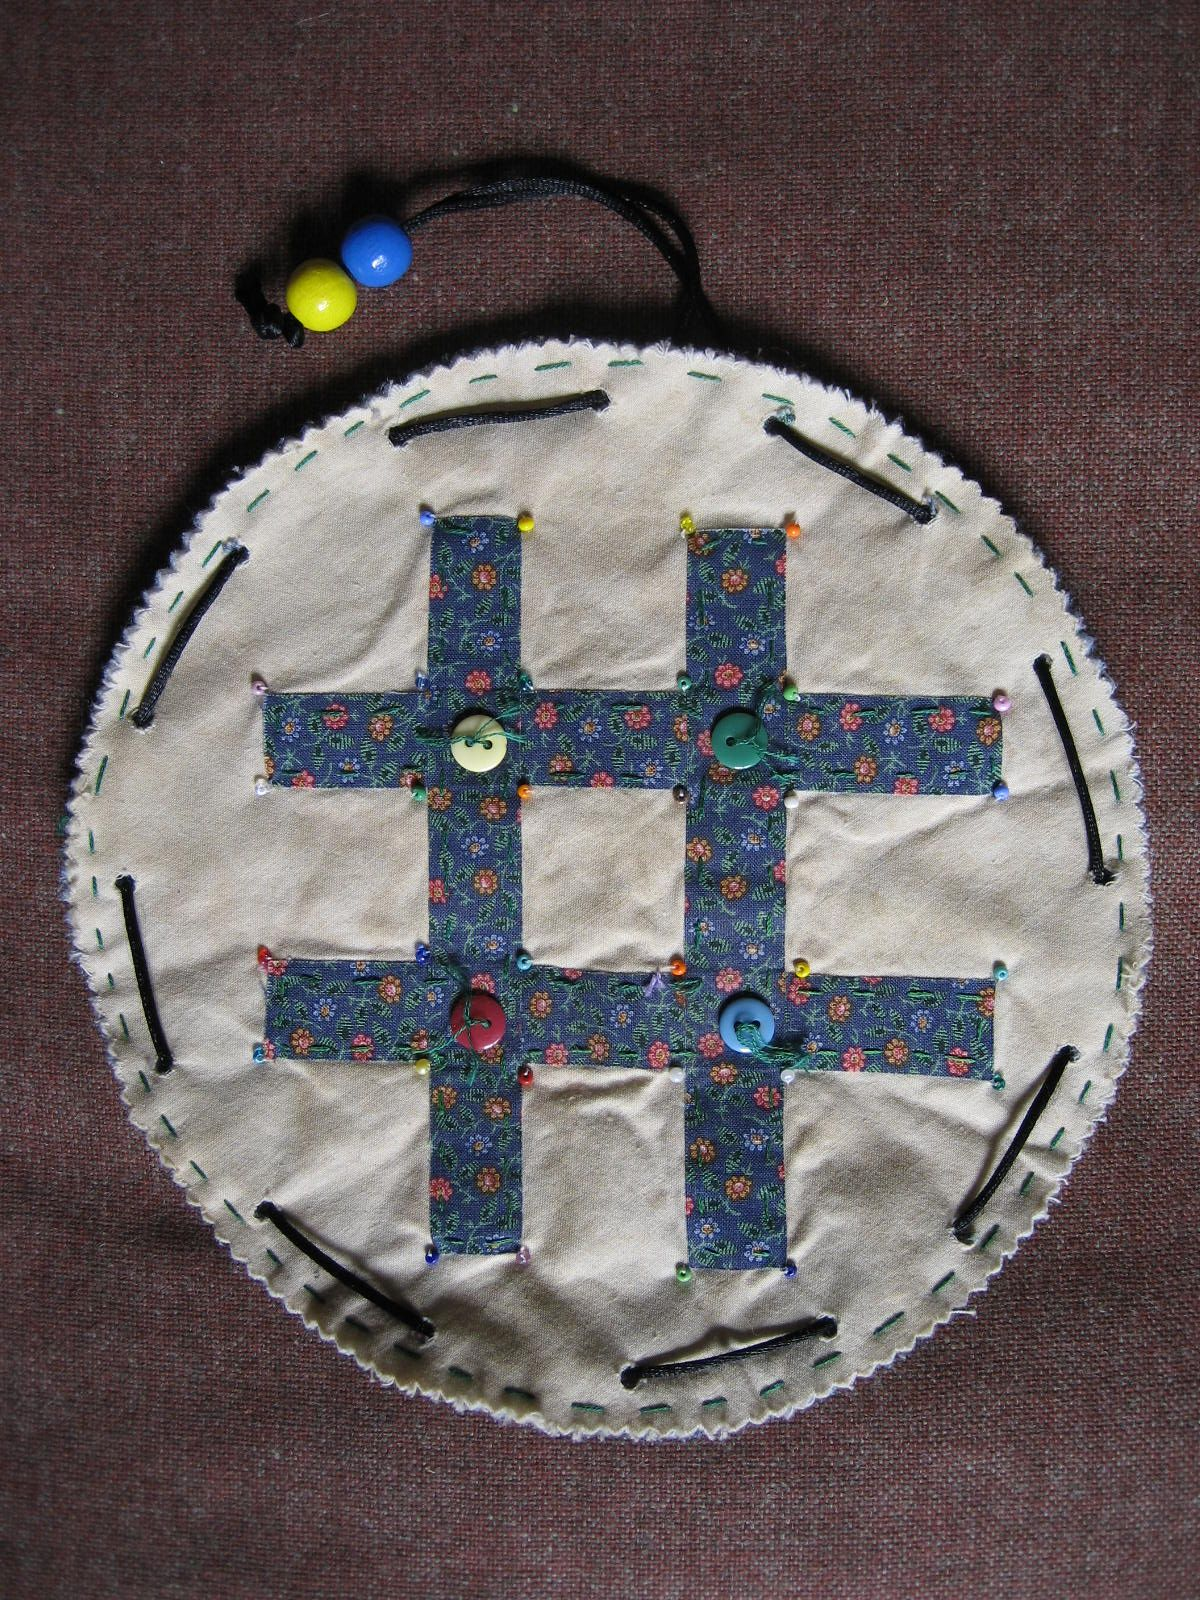 Pin on Felted & Sewing Fun